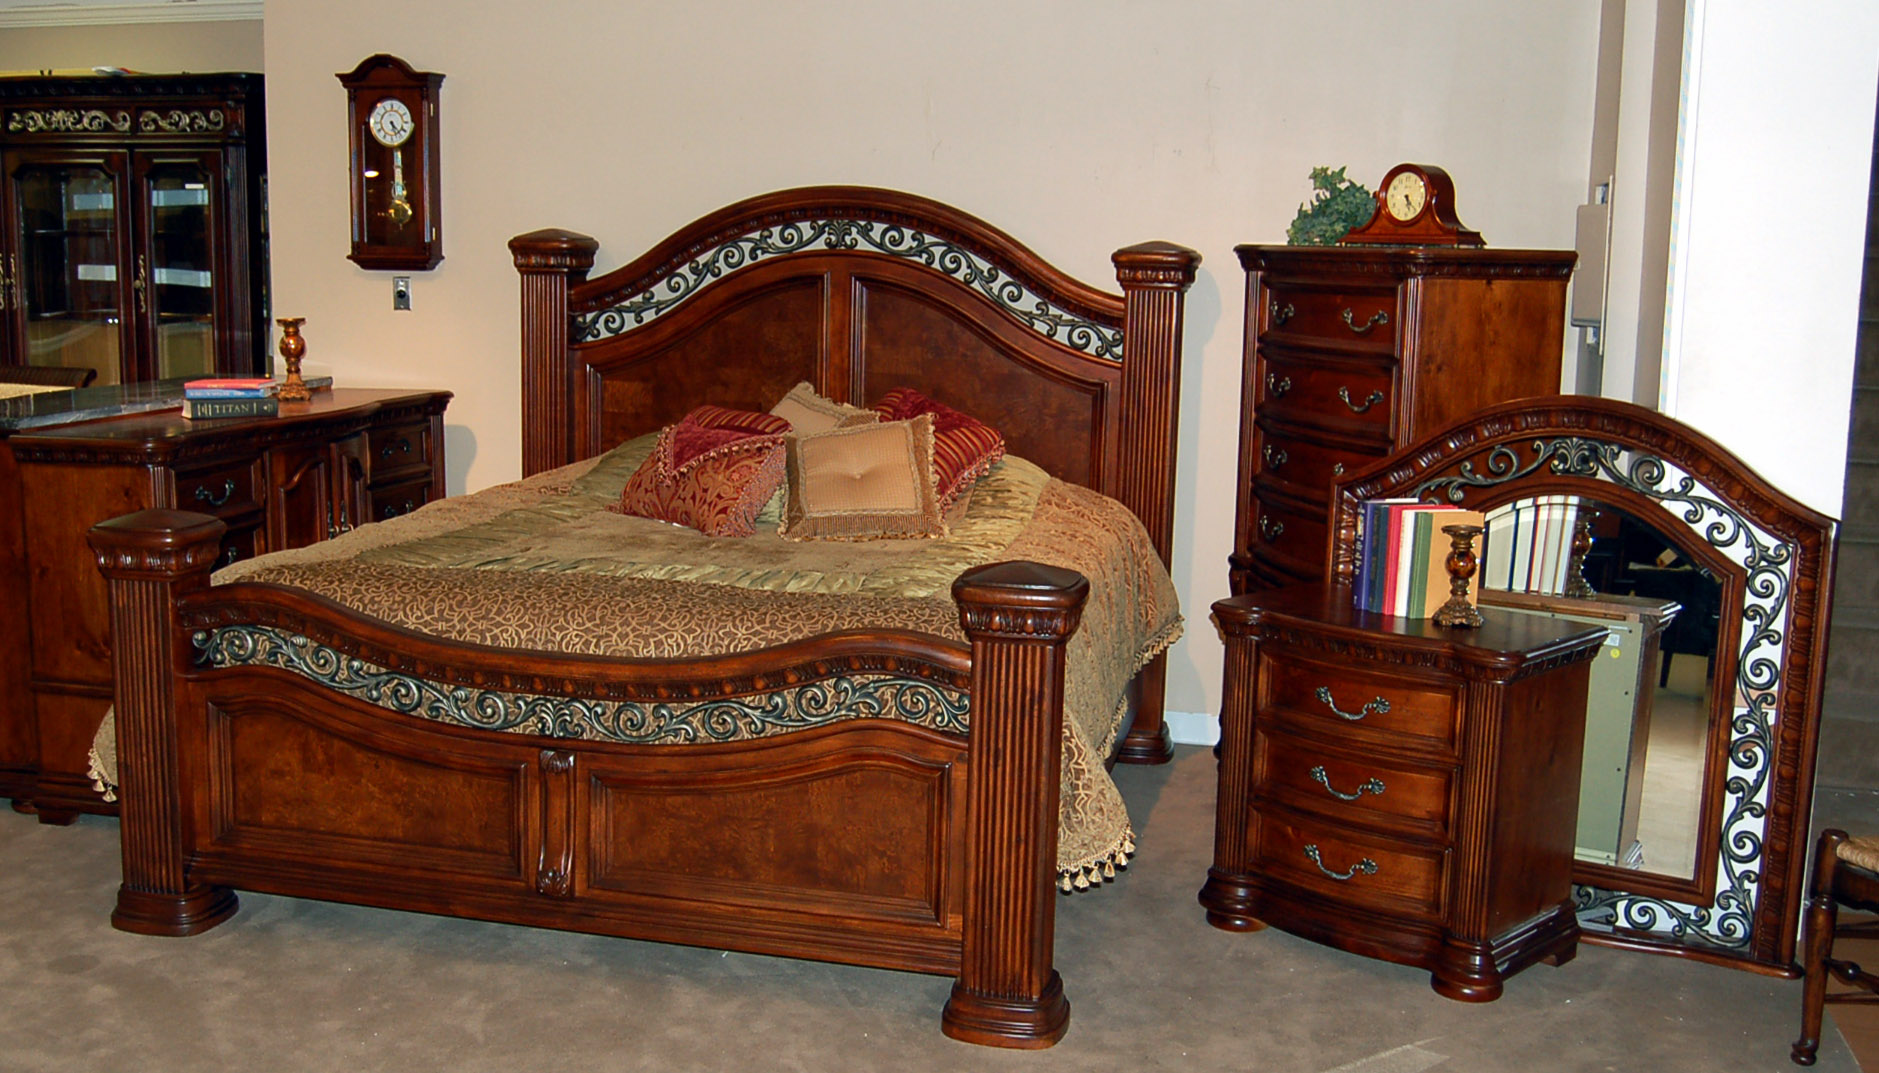 5 Piece Mansion King Size Bed Set Ebay